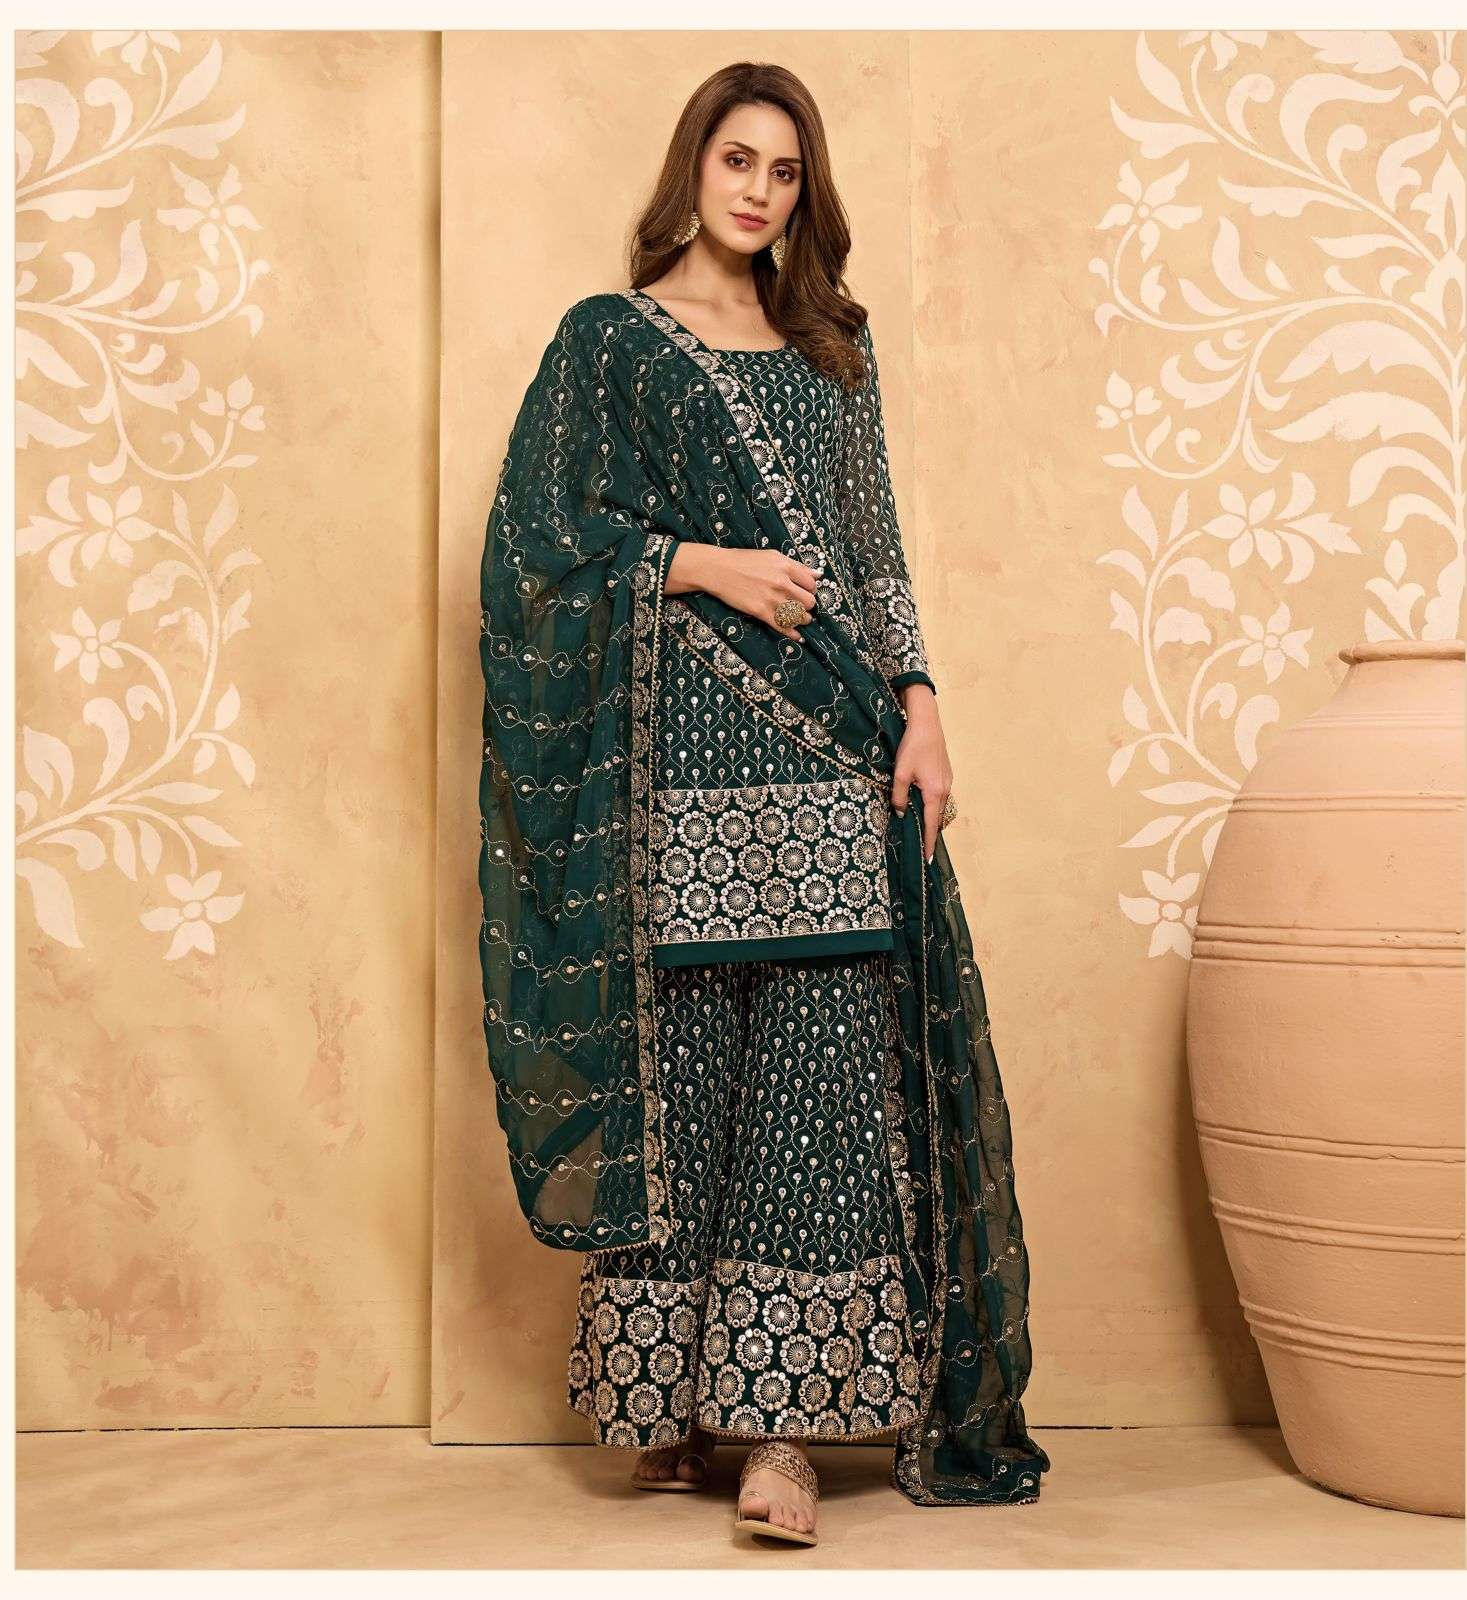 Alizeh Zaida Vol 5 Georgette With Fancy Work Readymade Sharara Collection 01